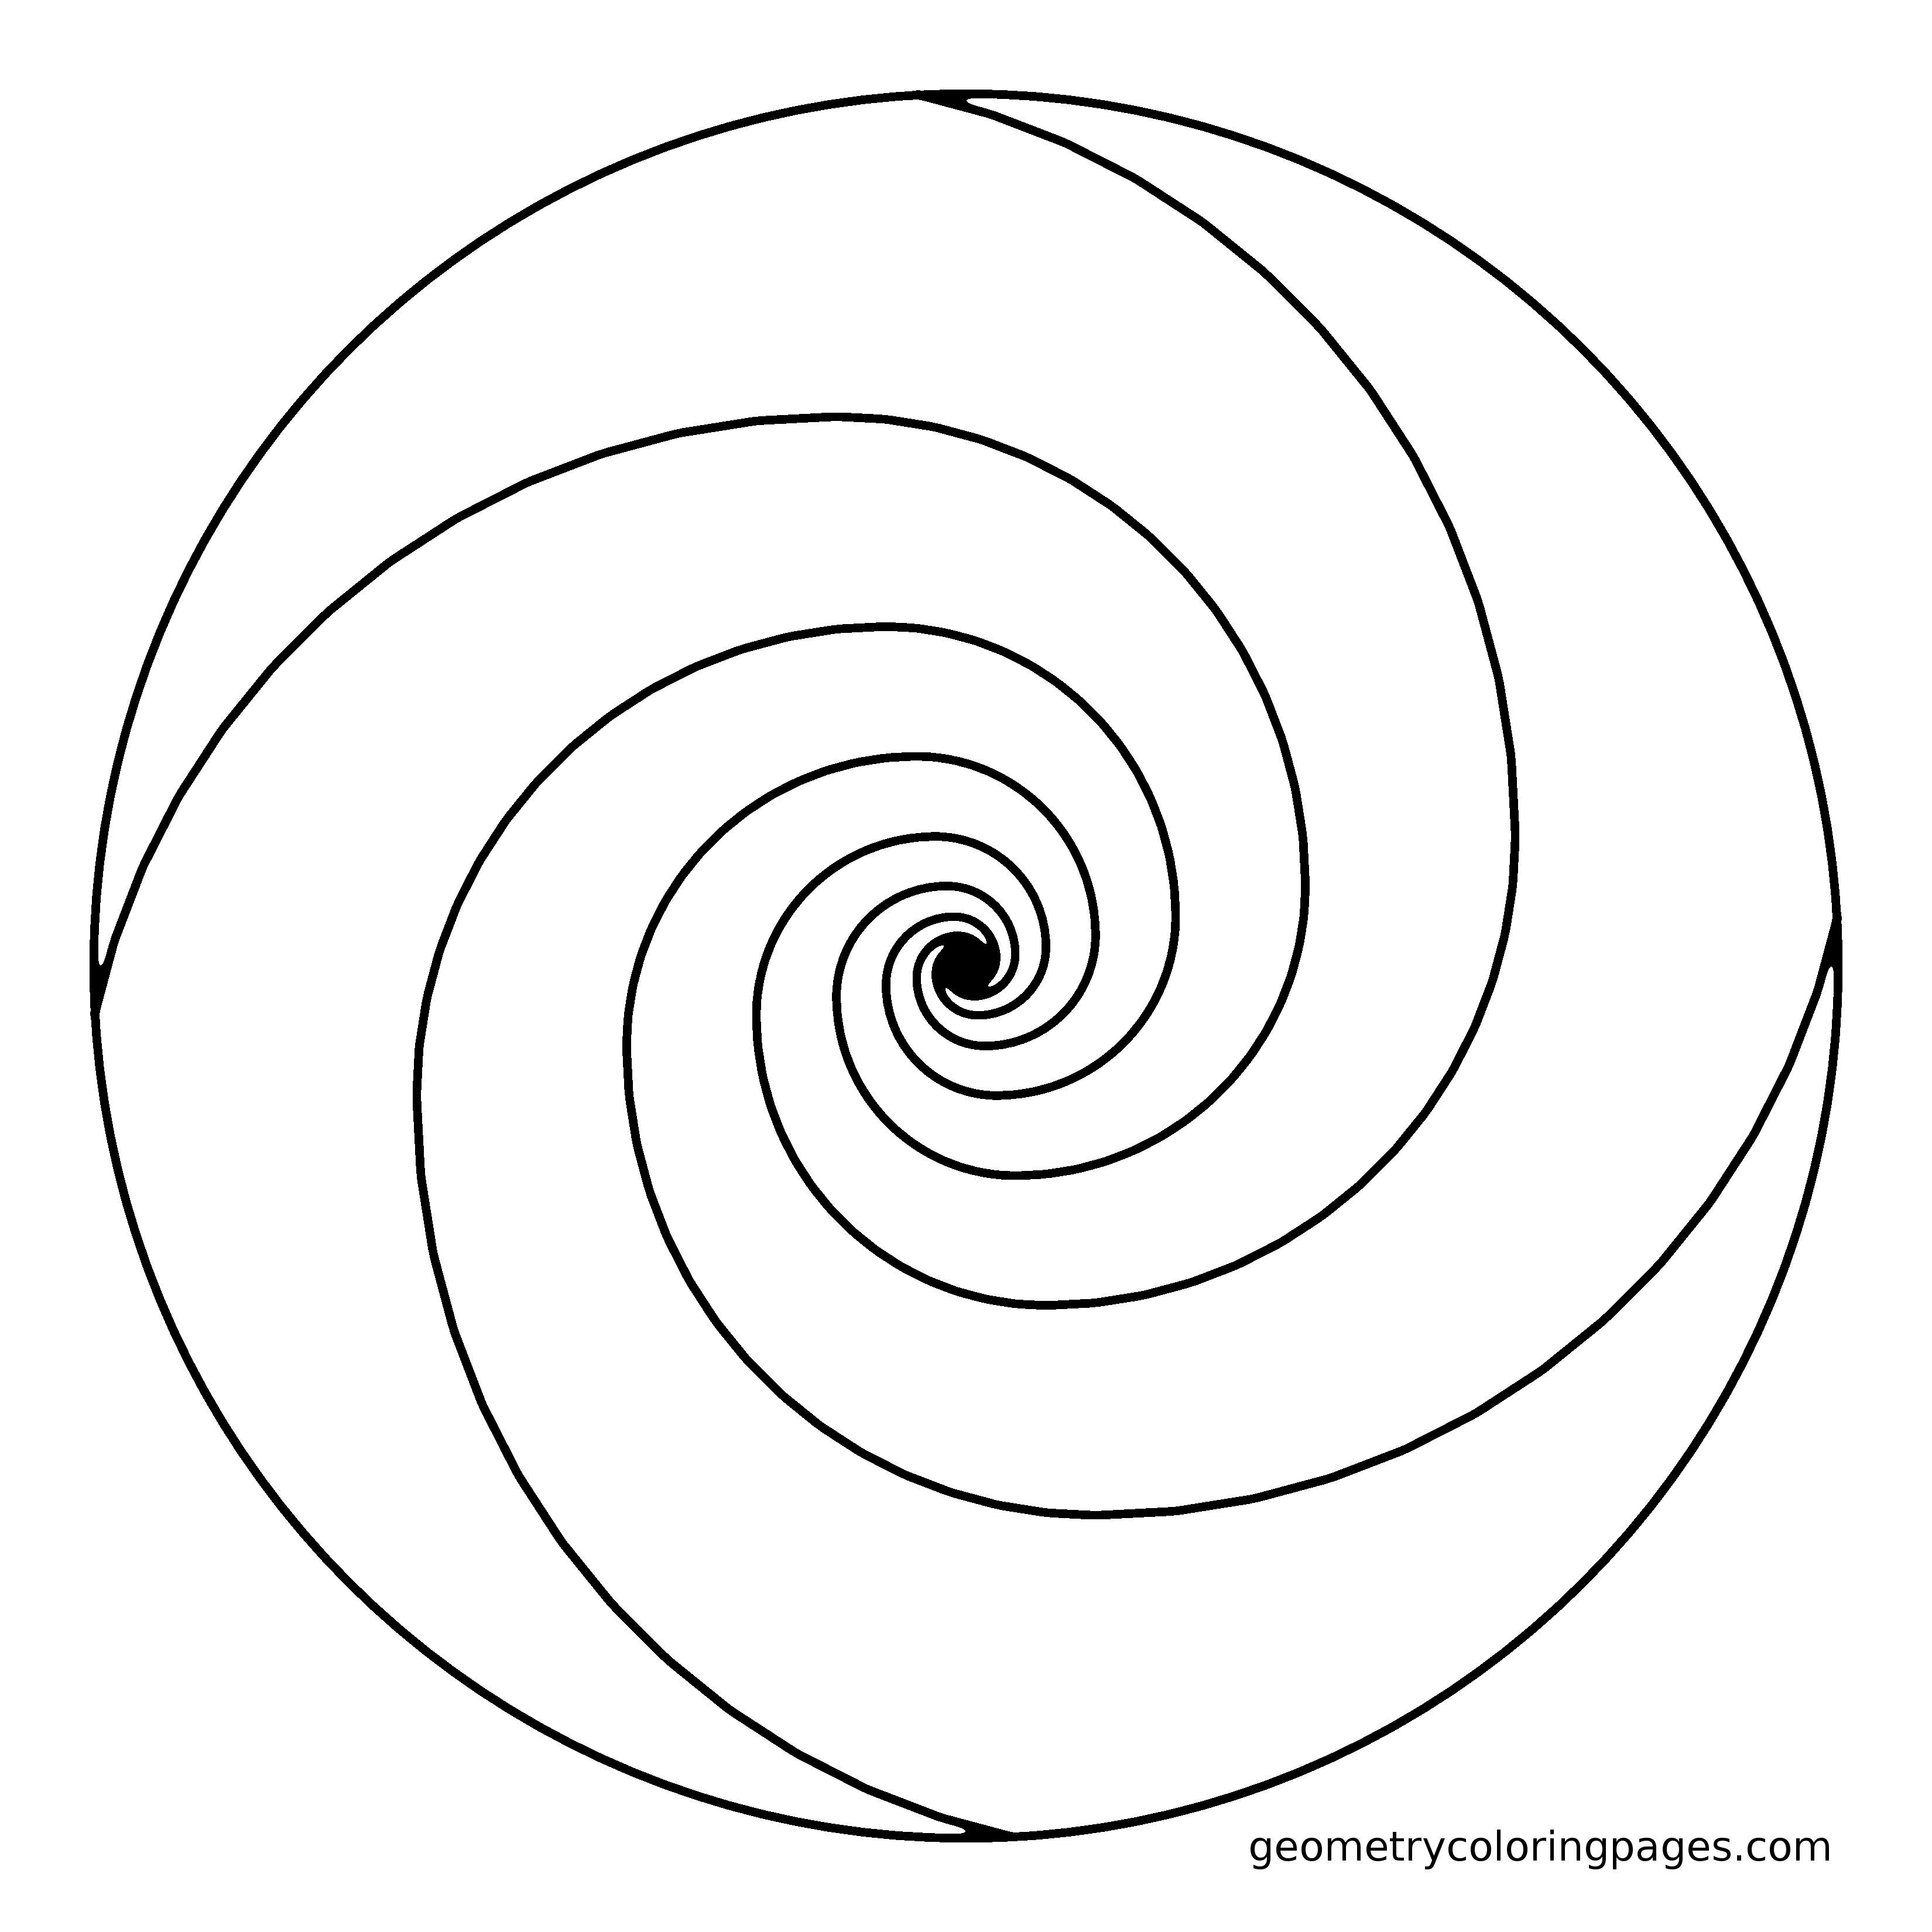 Spiral Coloring Download Spiral Coloring For Free